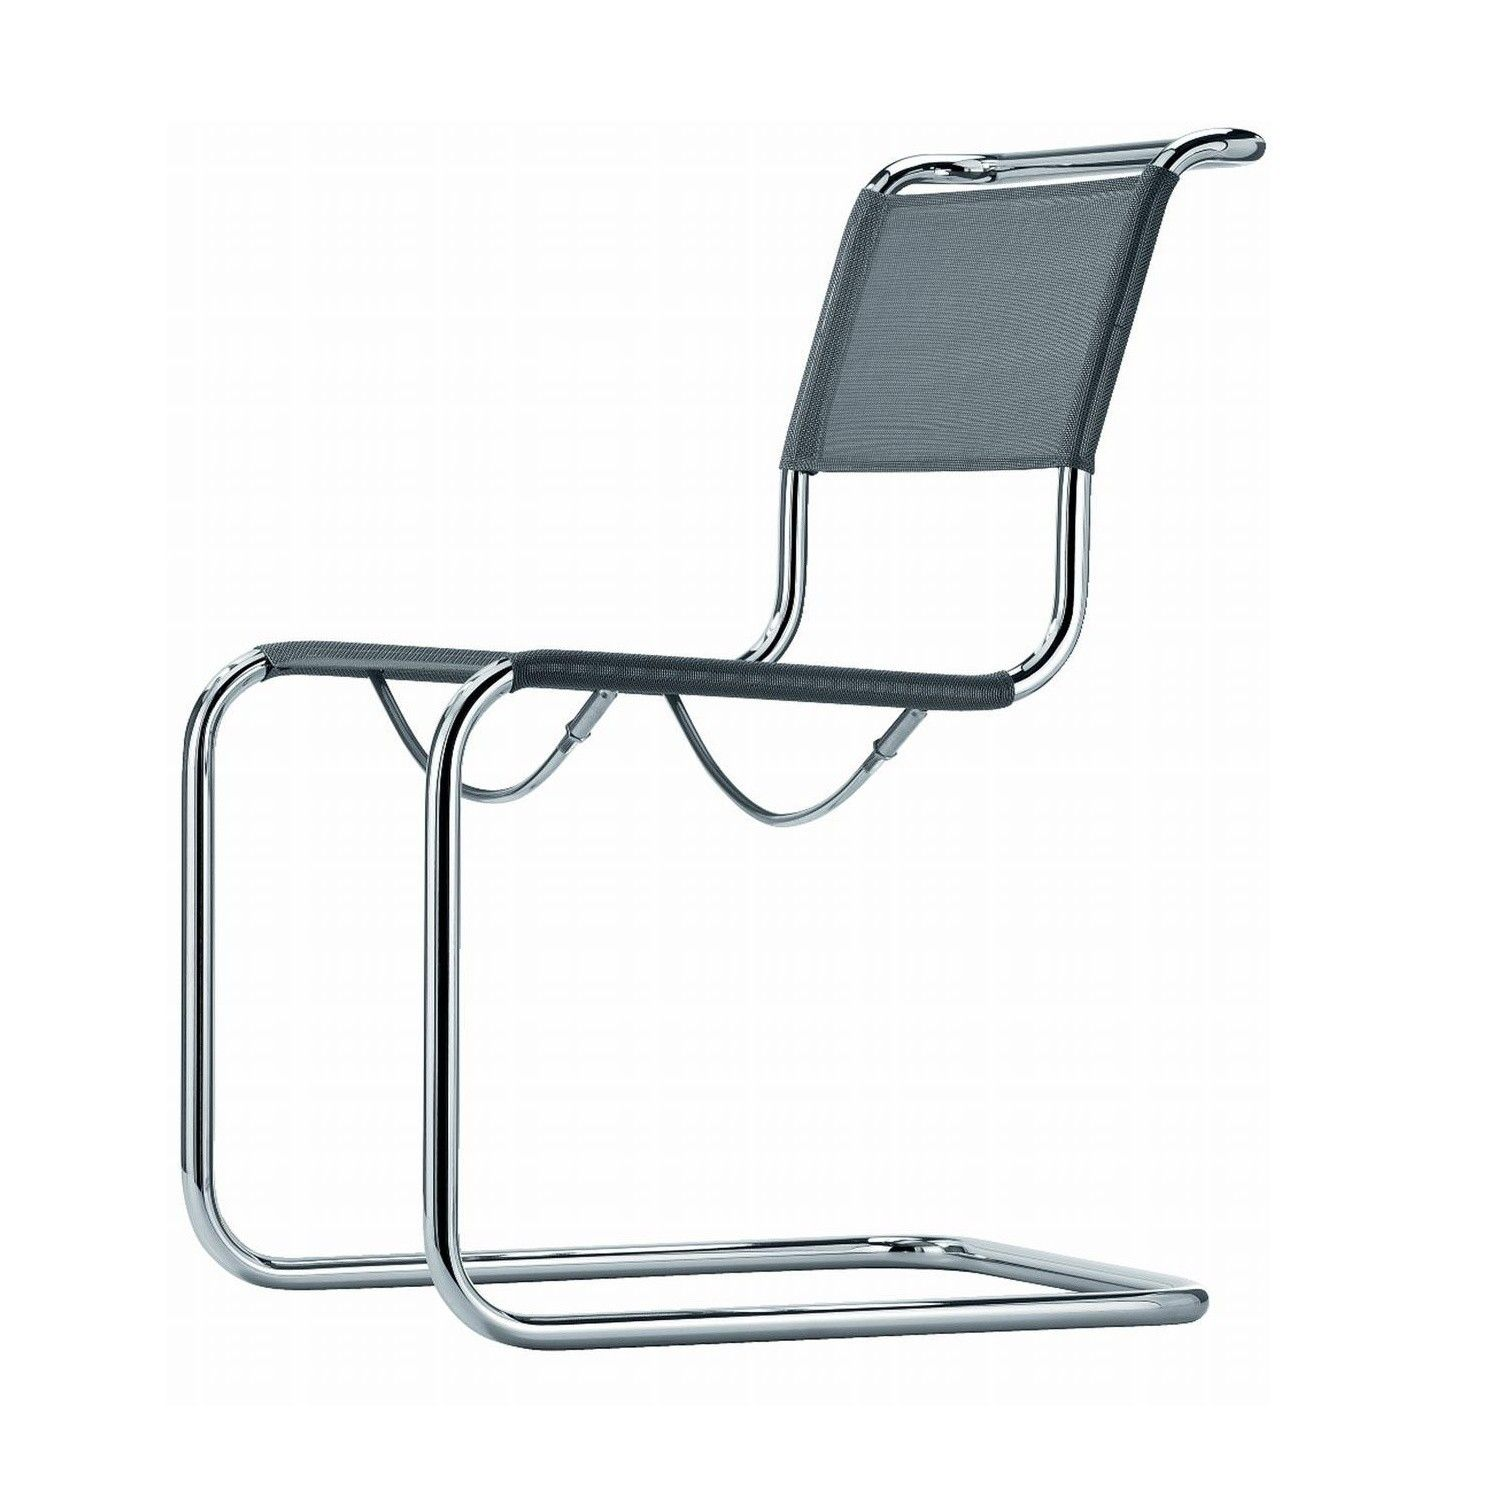 Thonet S 33 Cantilever Chair Cantilever Chair Chair Led Exterior Lighting